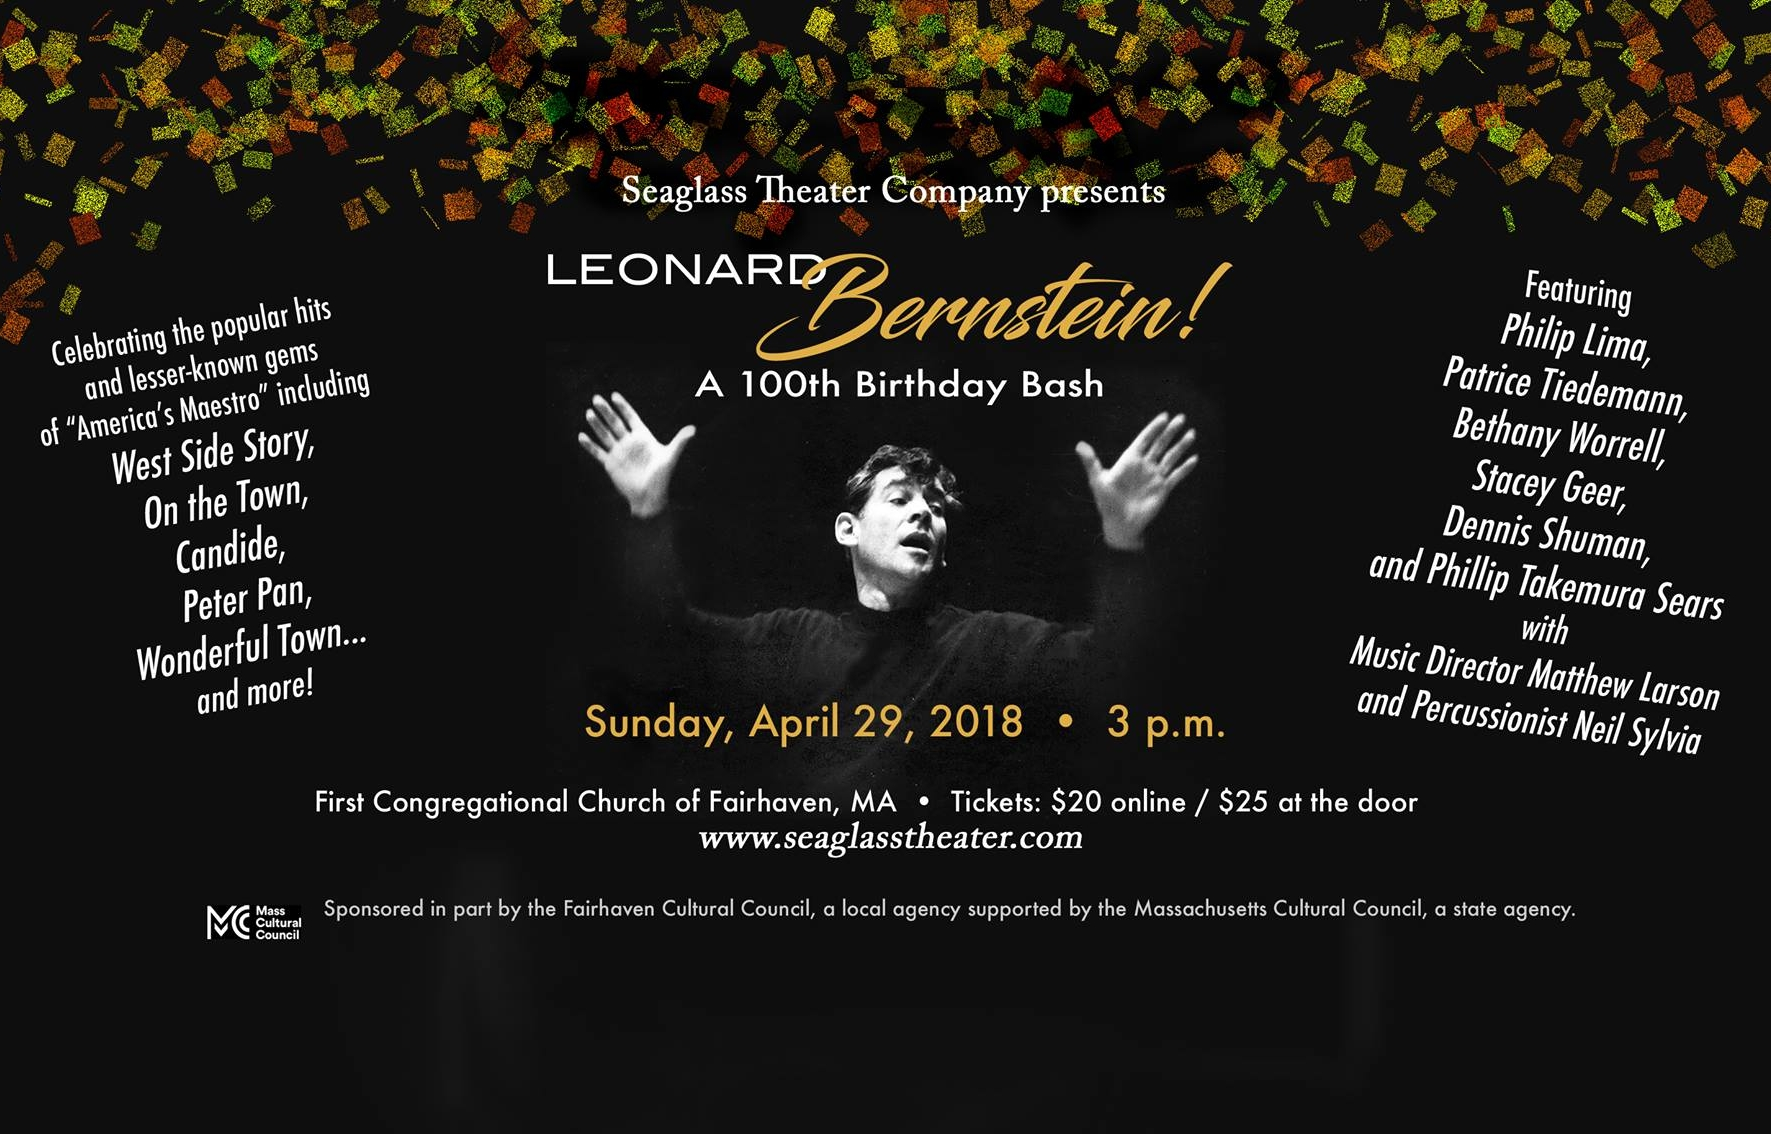 Leonard bernstein!A 100th Birthday Bash - April 29, 2018 at 3:00 PMBethany Worrell, soprano soloistSeaglass Theater CompanyFirst Congregational Church of FairhavenFairhaven, MATo reserve tickets, click here.